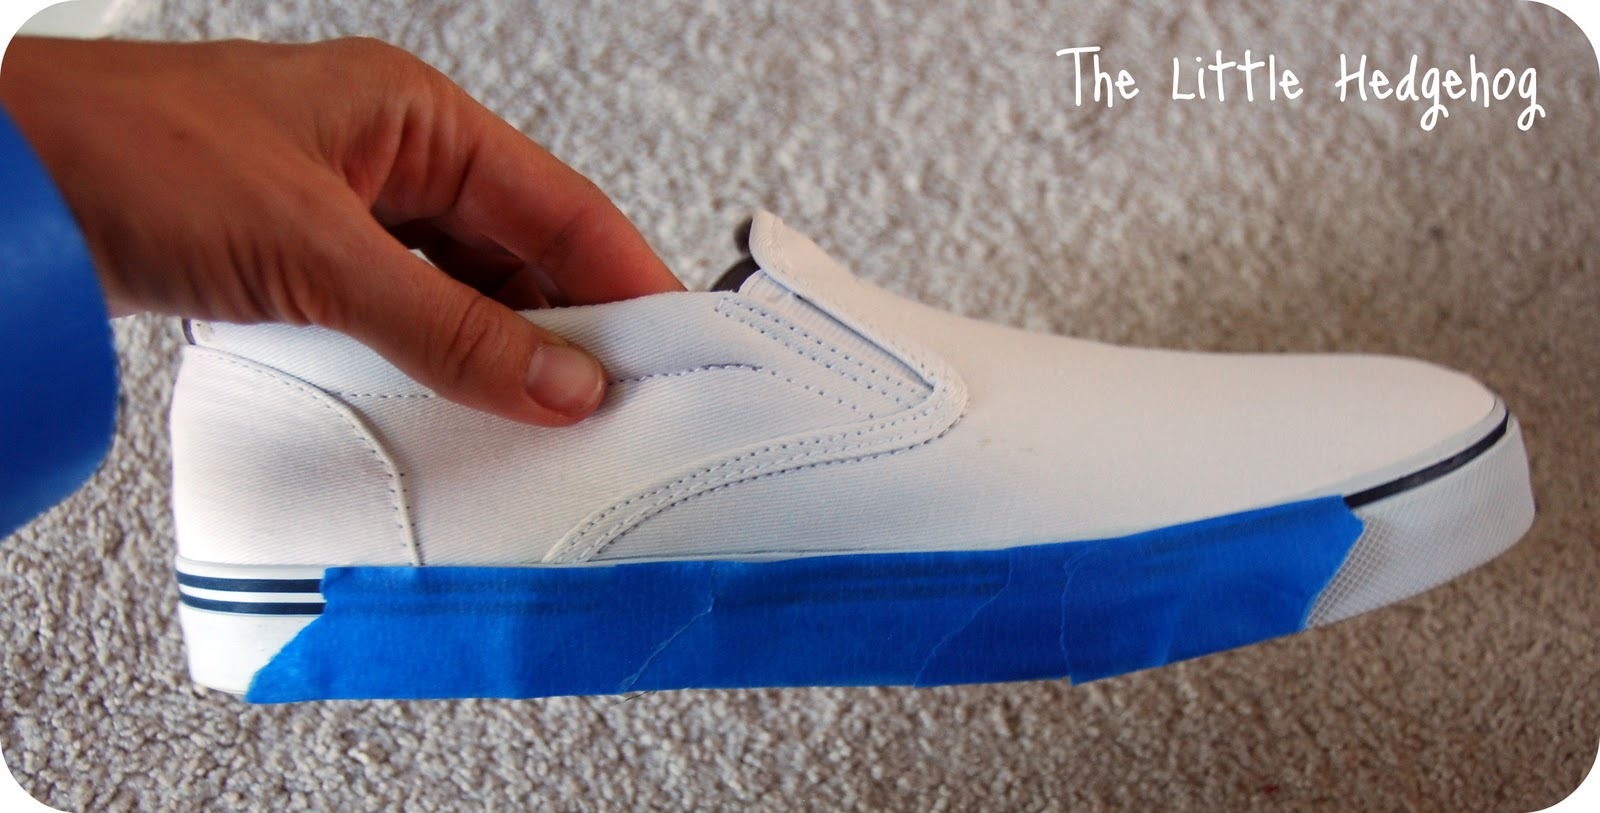 the hedgehog dyeing canvas shoes